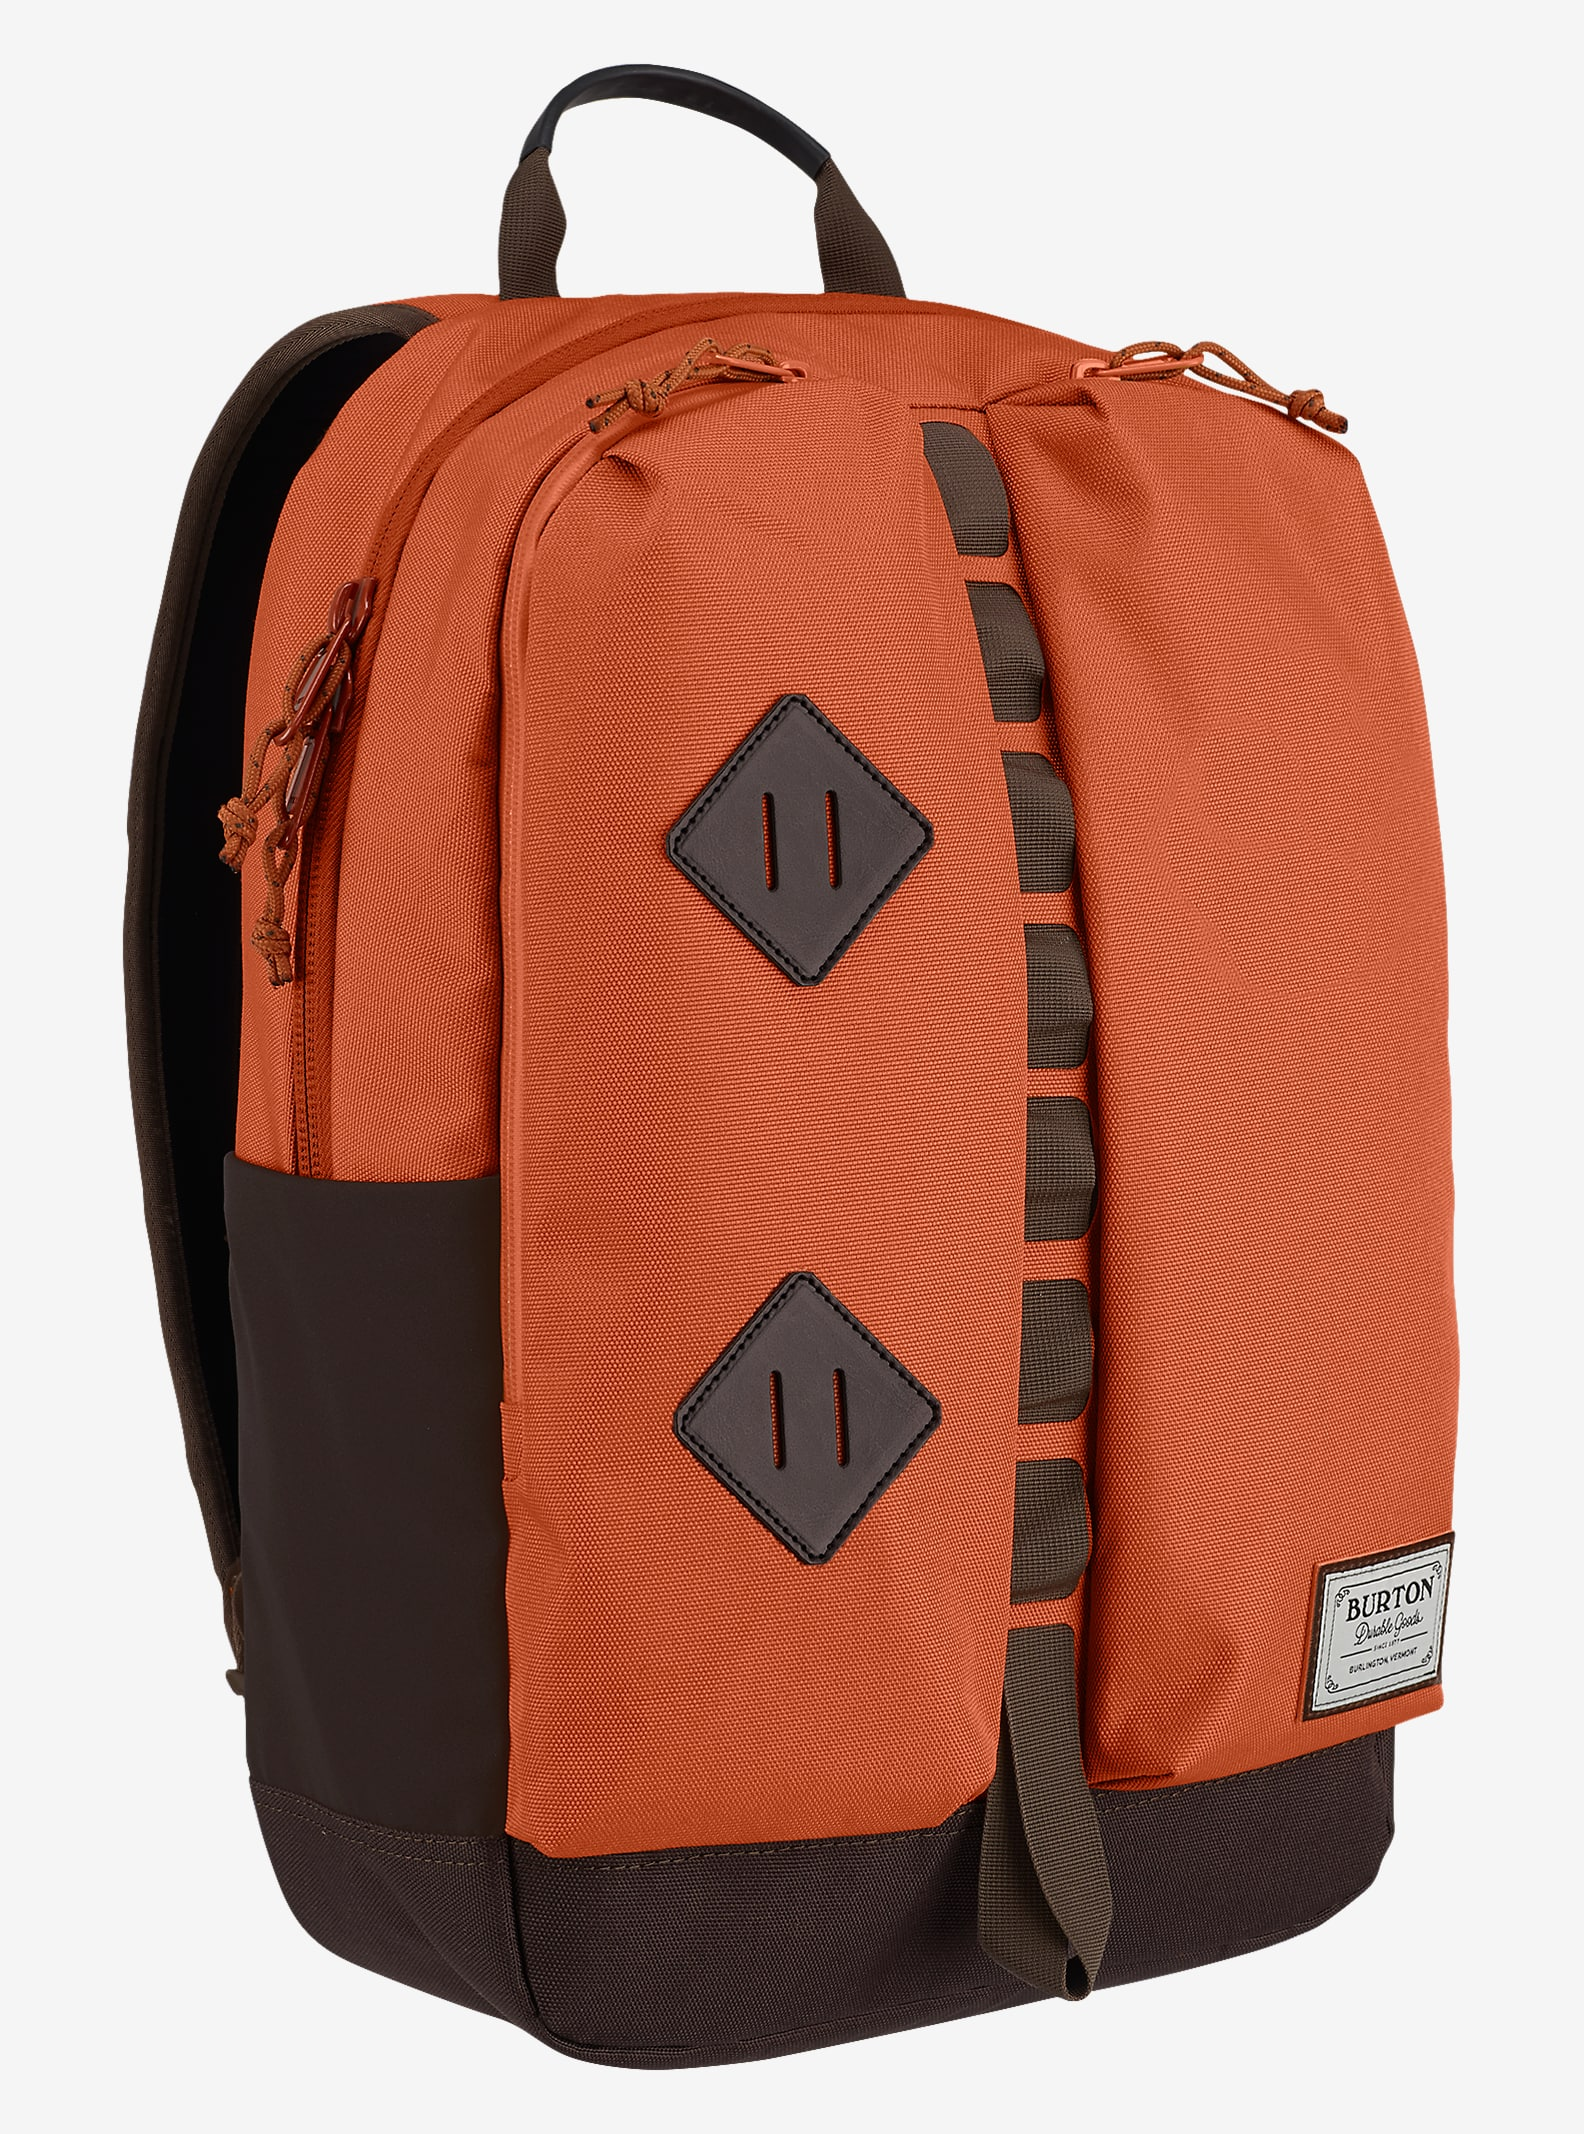 Burton Homestead Backpack shown in Burnt Ochre [bluesign® Approved]